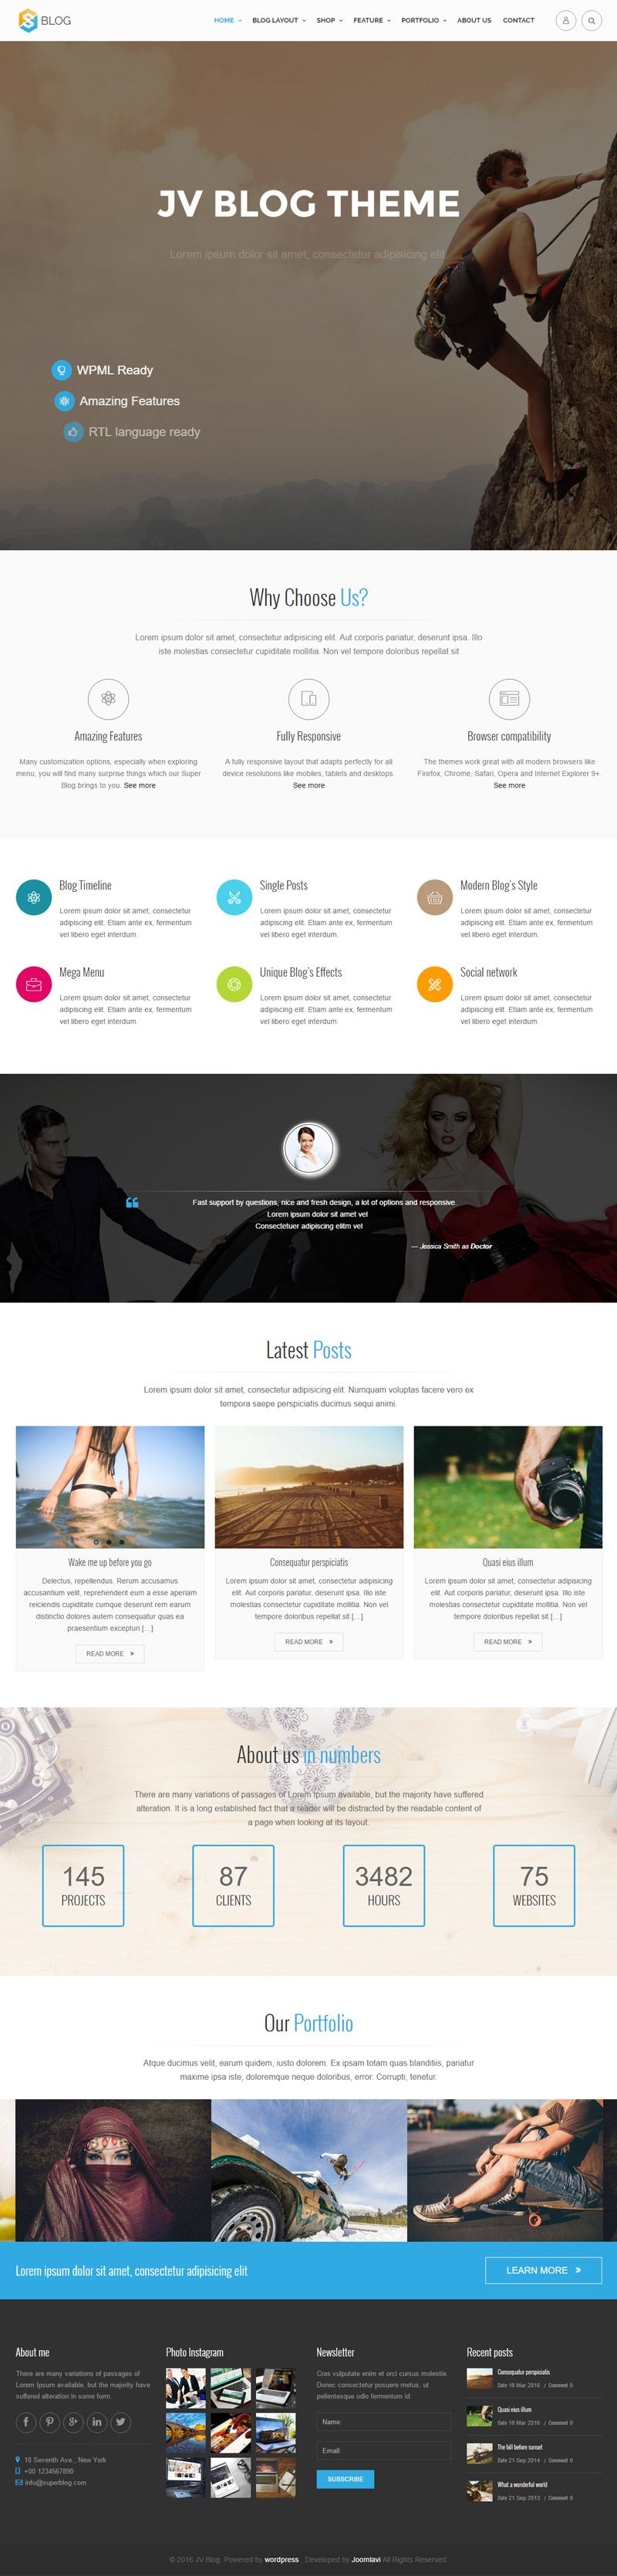 Jv Blog - Responsive WordPress Theme Screenshot 1